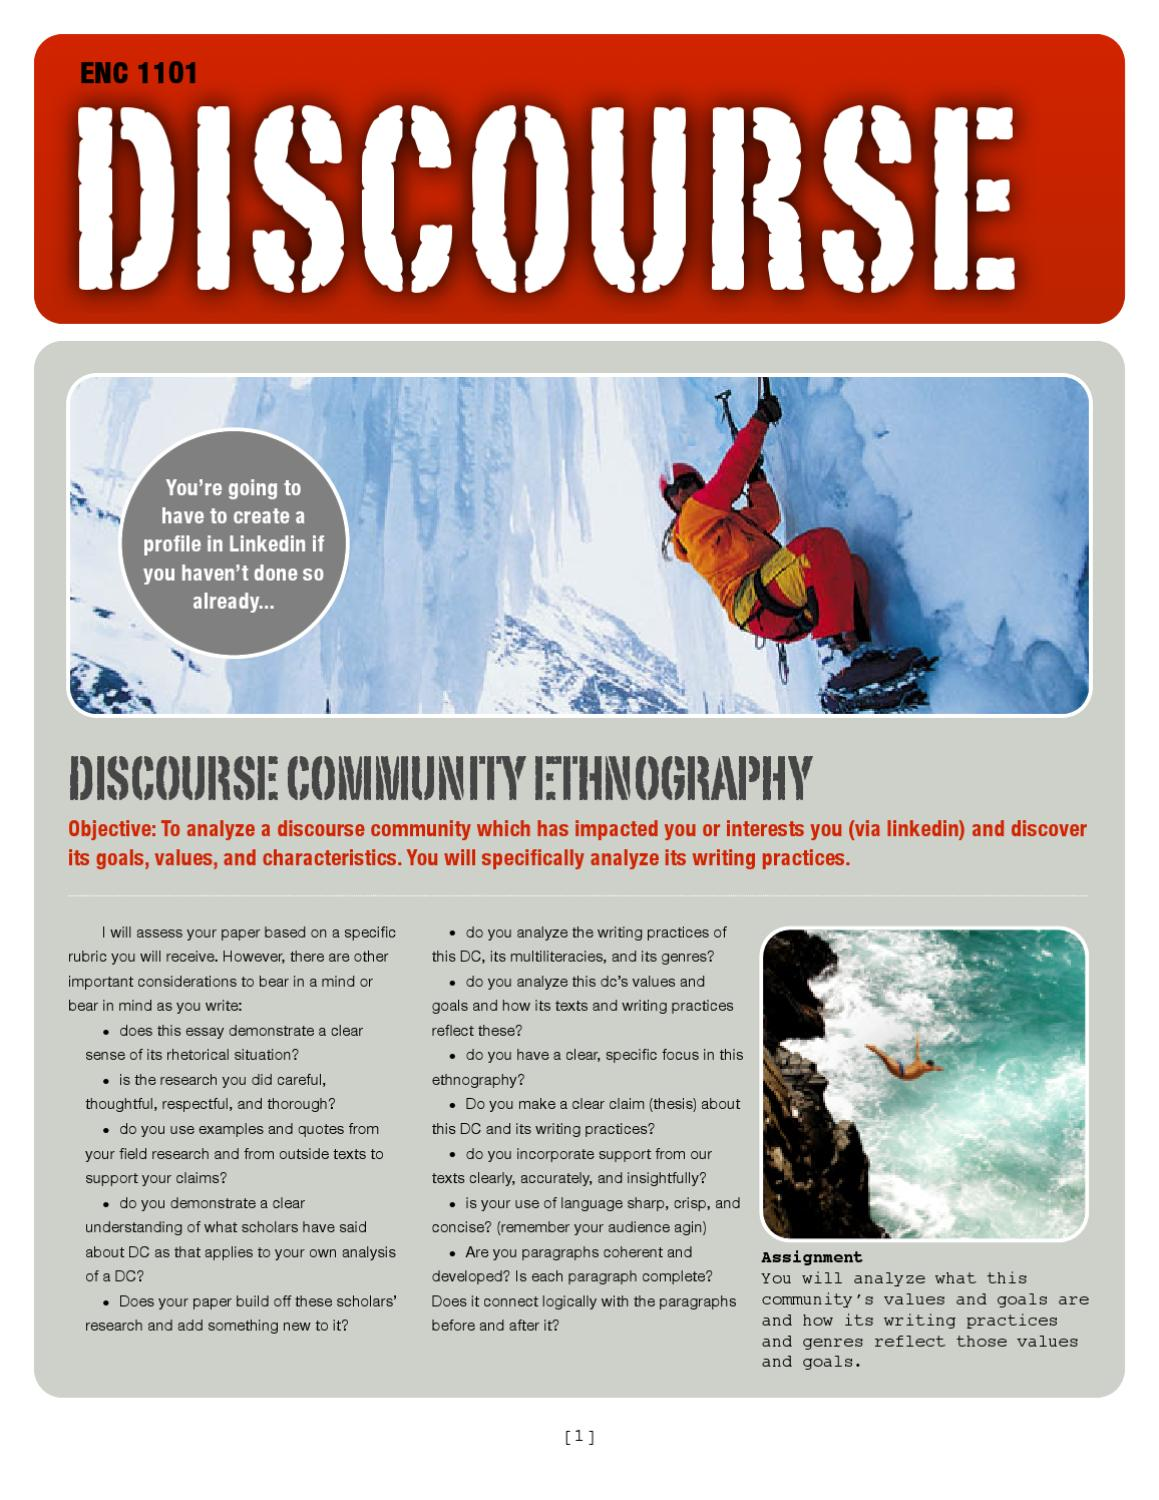 discourse community project discourse We started discourse as an open source project in early 2013, offered our first hosting in 2014, and we've worked hard since then to continually improve discourse for every community, whether we host it or not we're confident we've built an amazing forum platform you and your community will love.